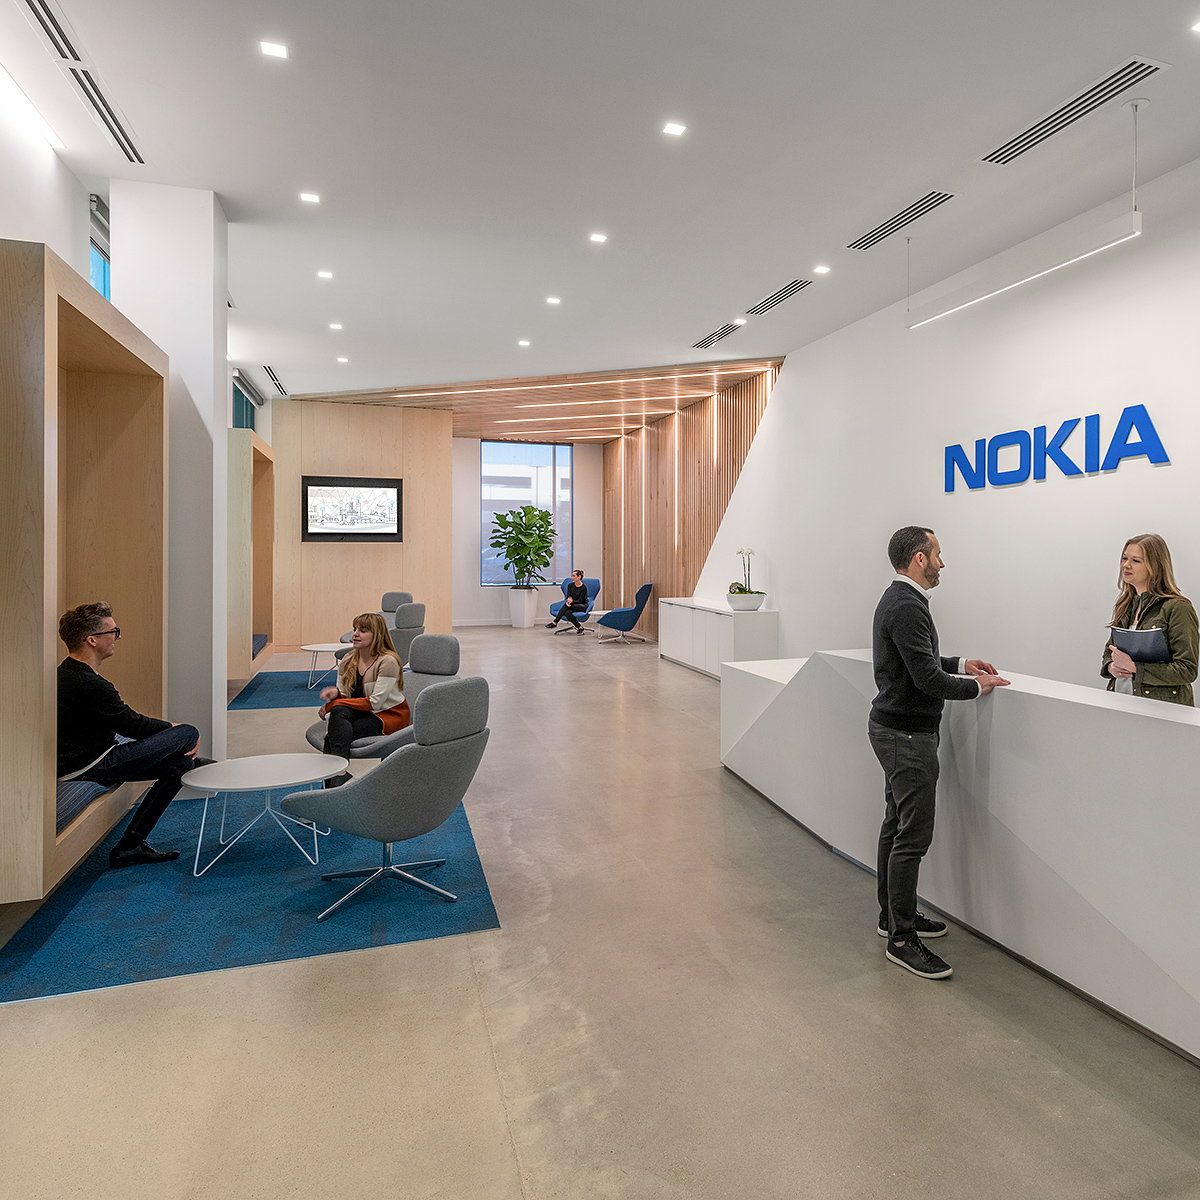 CallisonRTKL Brings Together Two Nokia Offices to Create One Collaborative Workplace